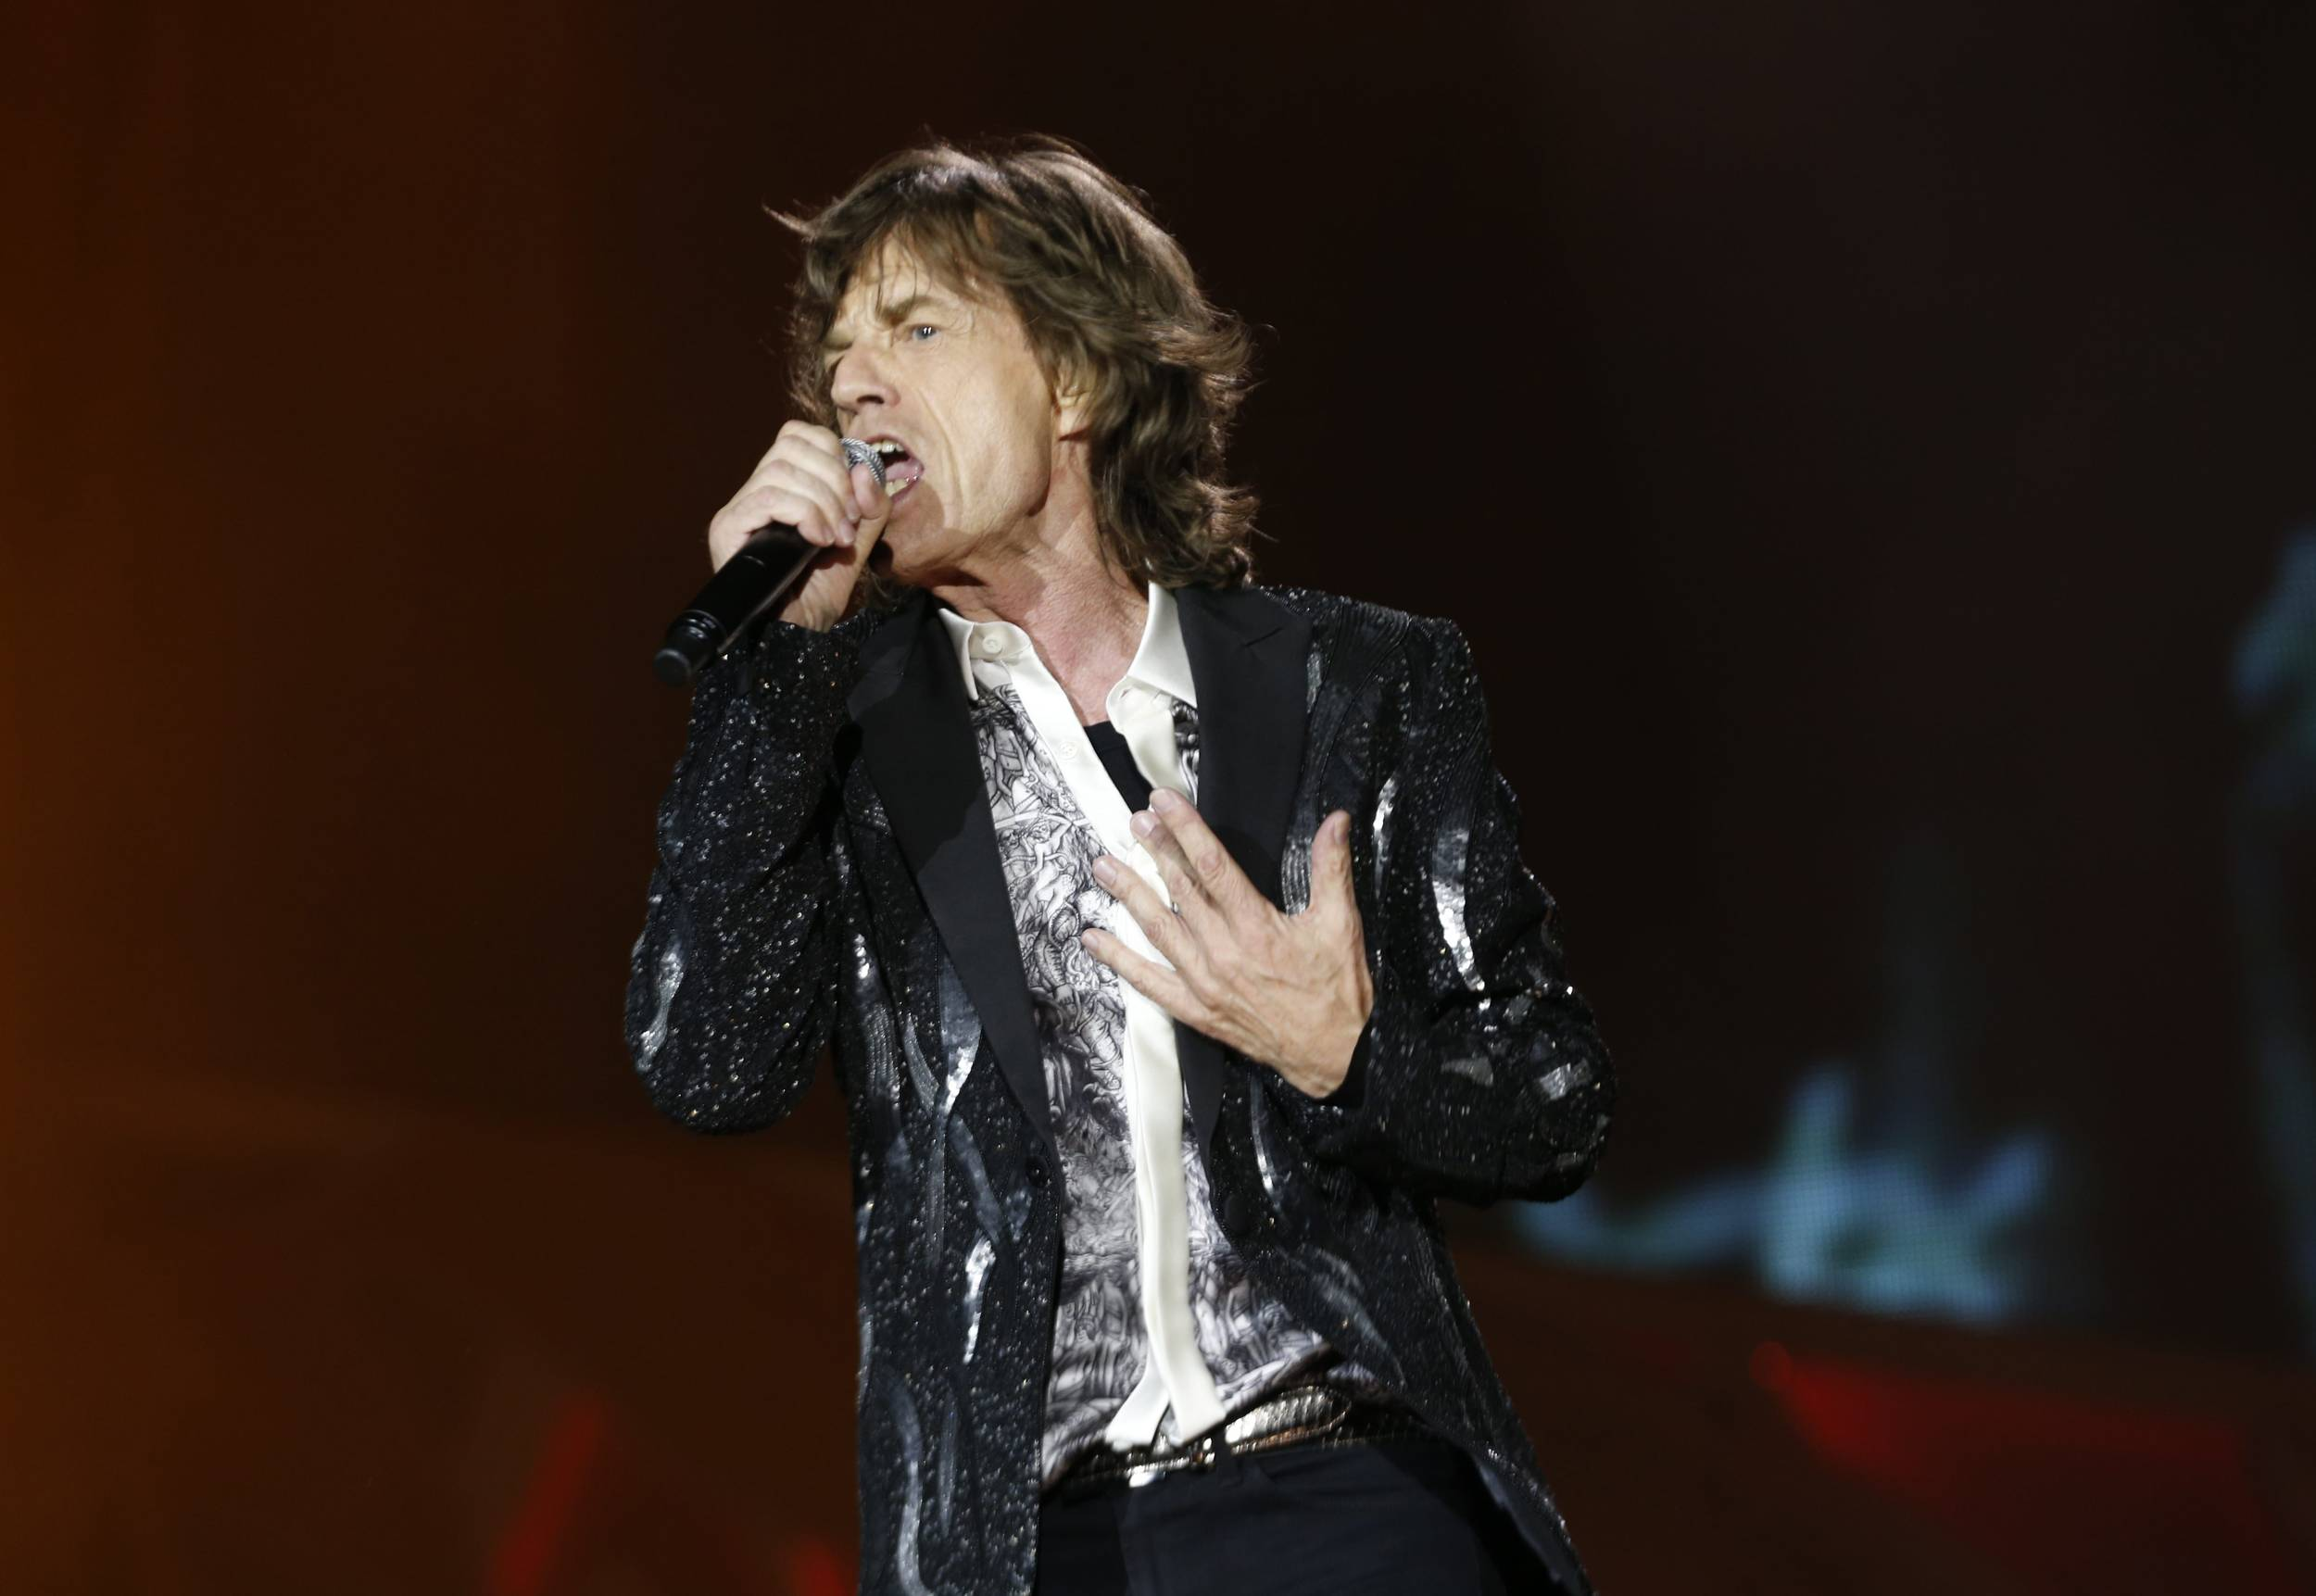 Rolling Stones singer frontman Mick Jagger performs during a concert in the Telenor Arena at Fornebu in Baerum just south of Oslo, Norway, Monday. It was the first time the Rolling Stones have played since the death of Jagger's longtime companion L'Wren Scott died earlier this year.